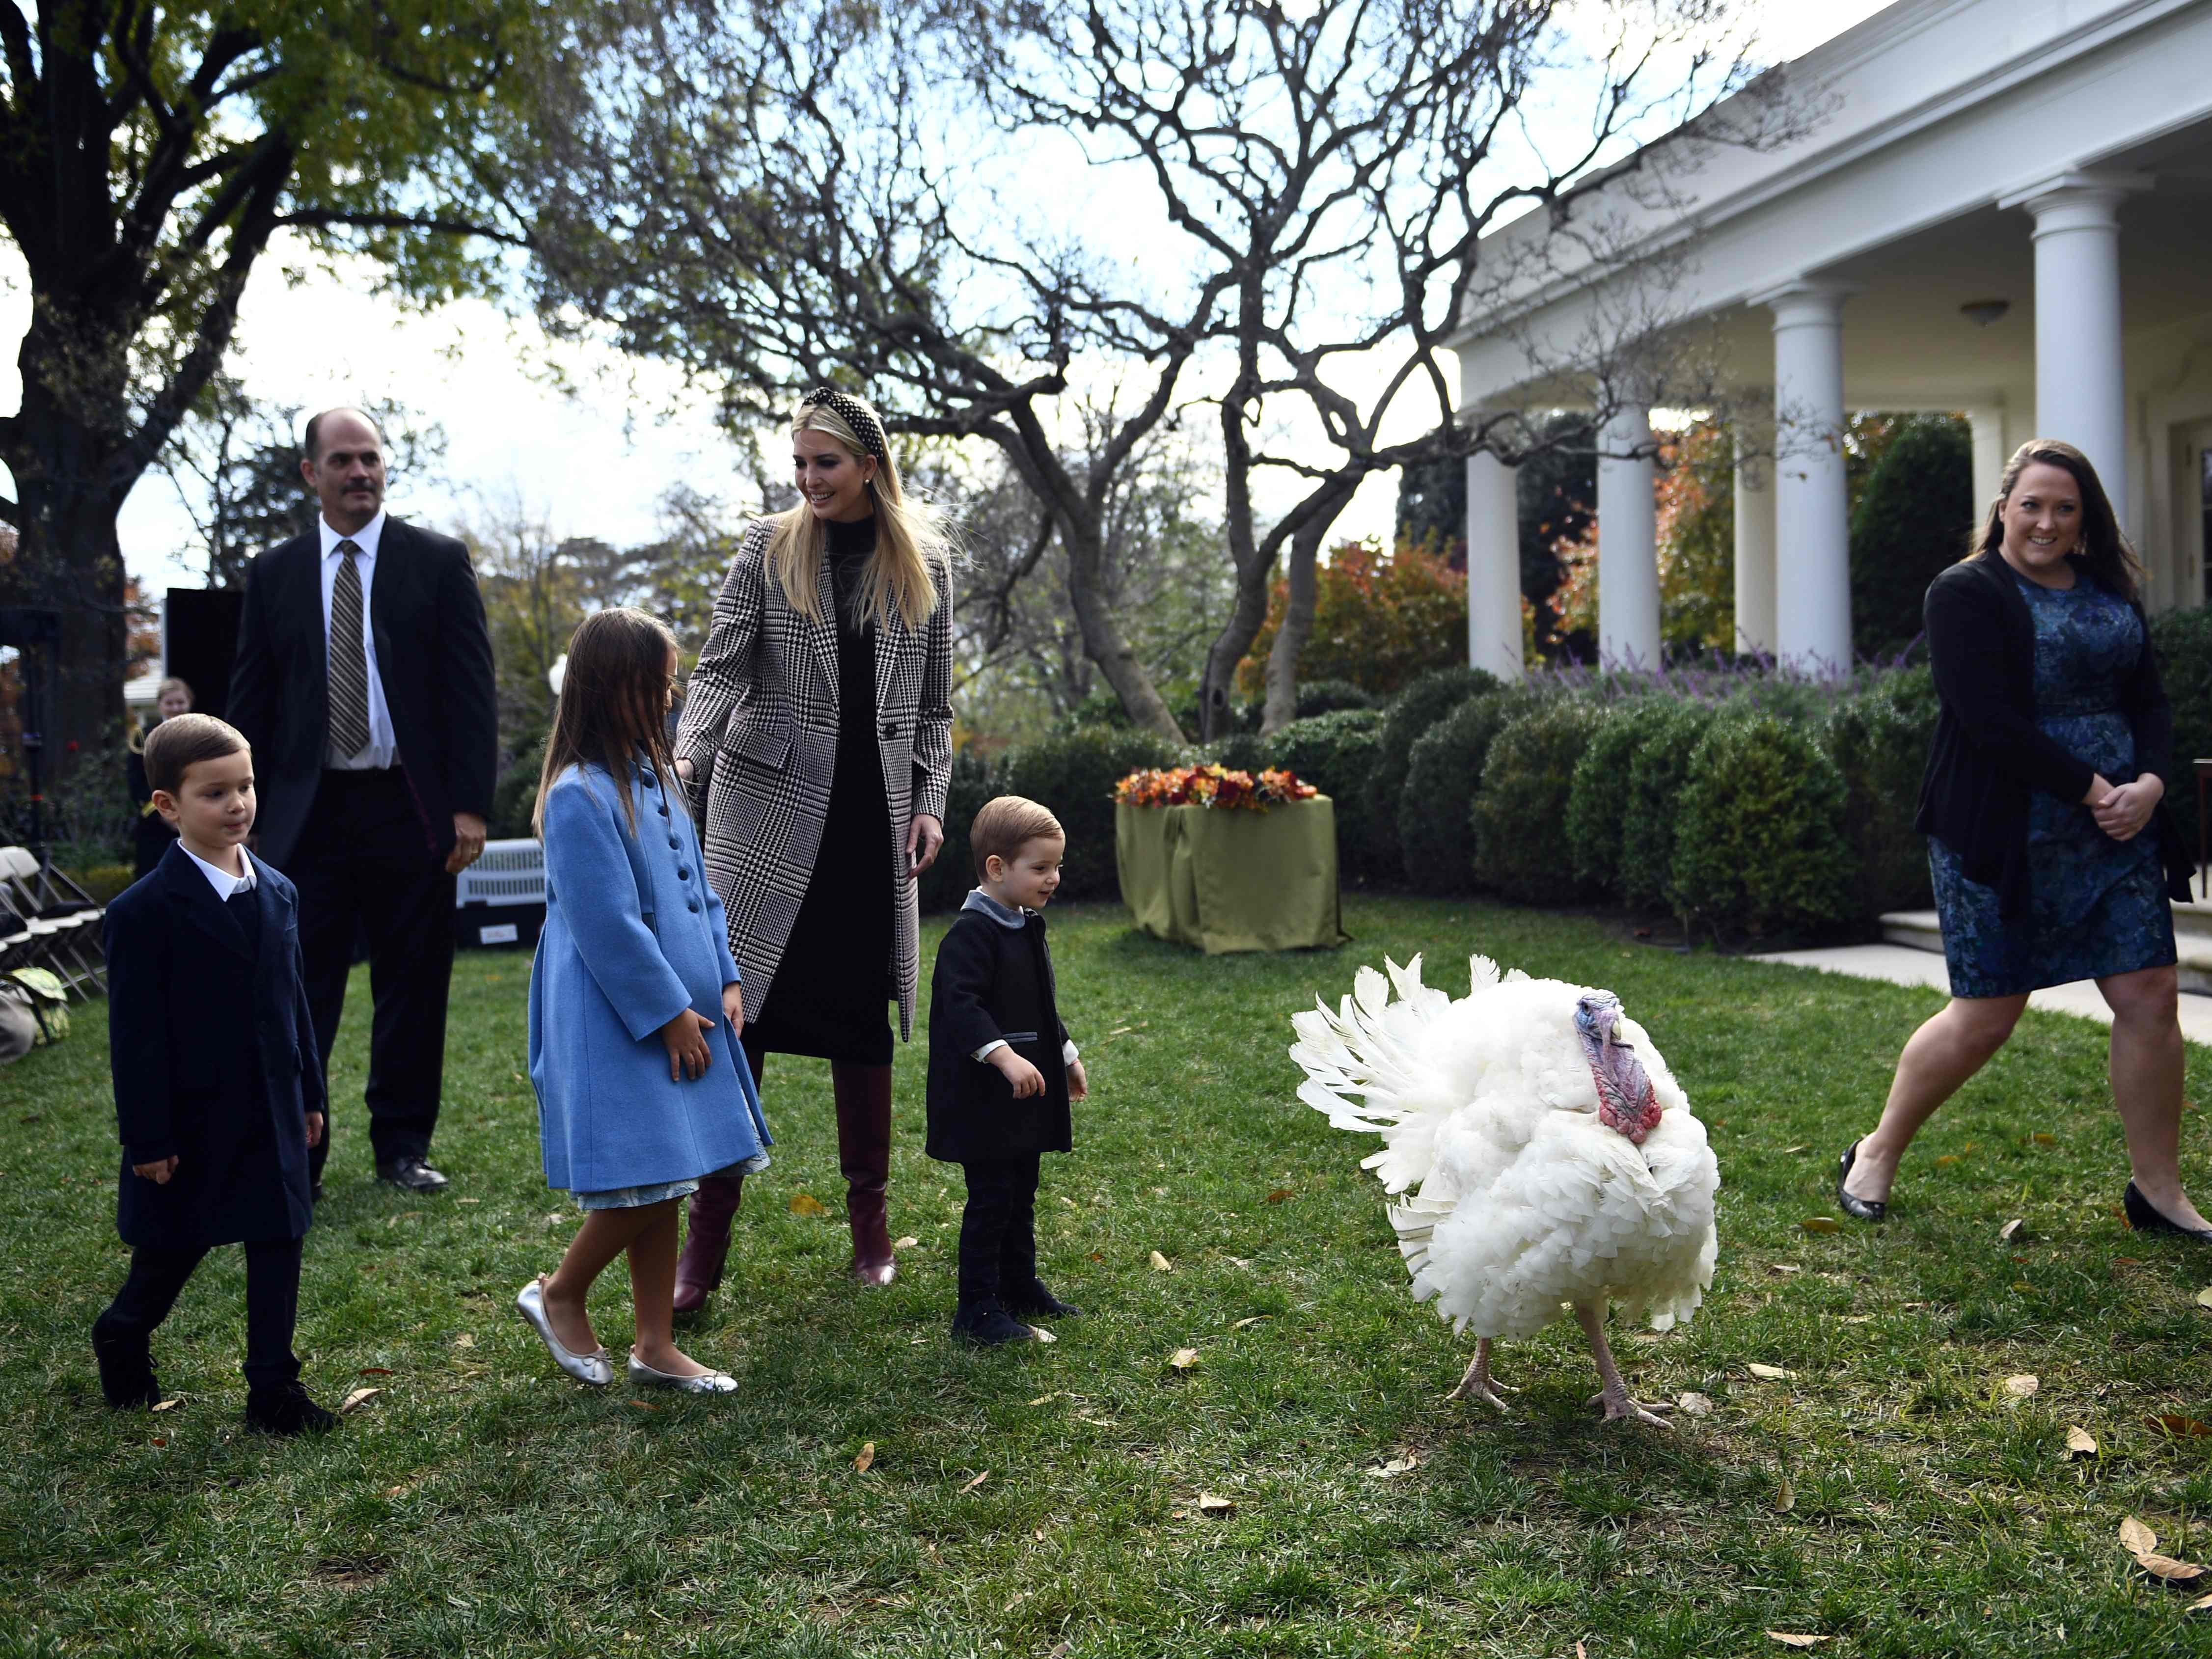 Ivanka Trump watches as her children chase after a turkey which is to be pardoned by President Trump during an annual ceremony at the White House in Washington, Nov. 20, 2018.